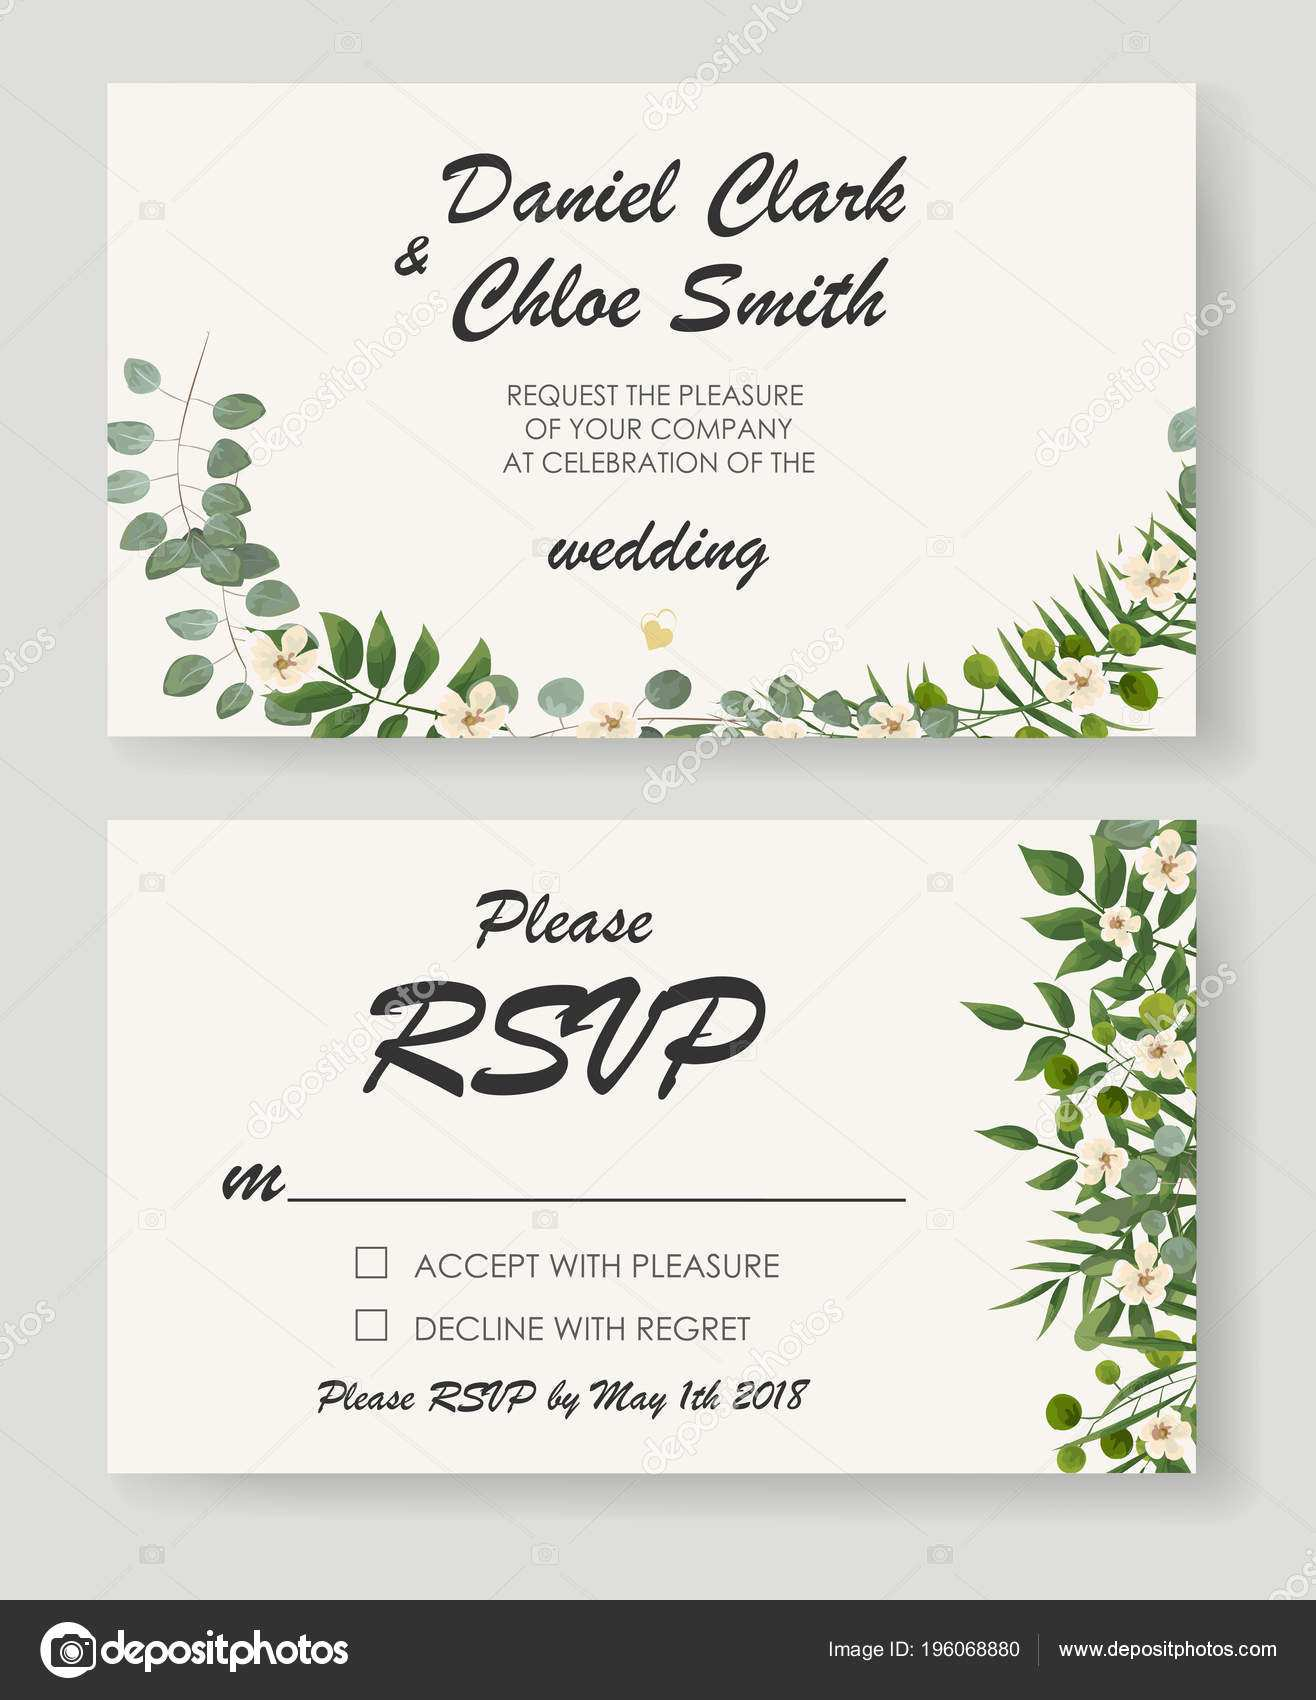 83 Visiting Wedding Invitation Template Rsvp Download by Wedding Invitation Template Rsvp